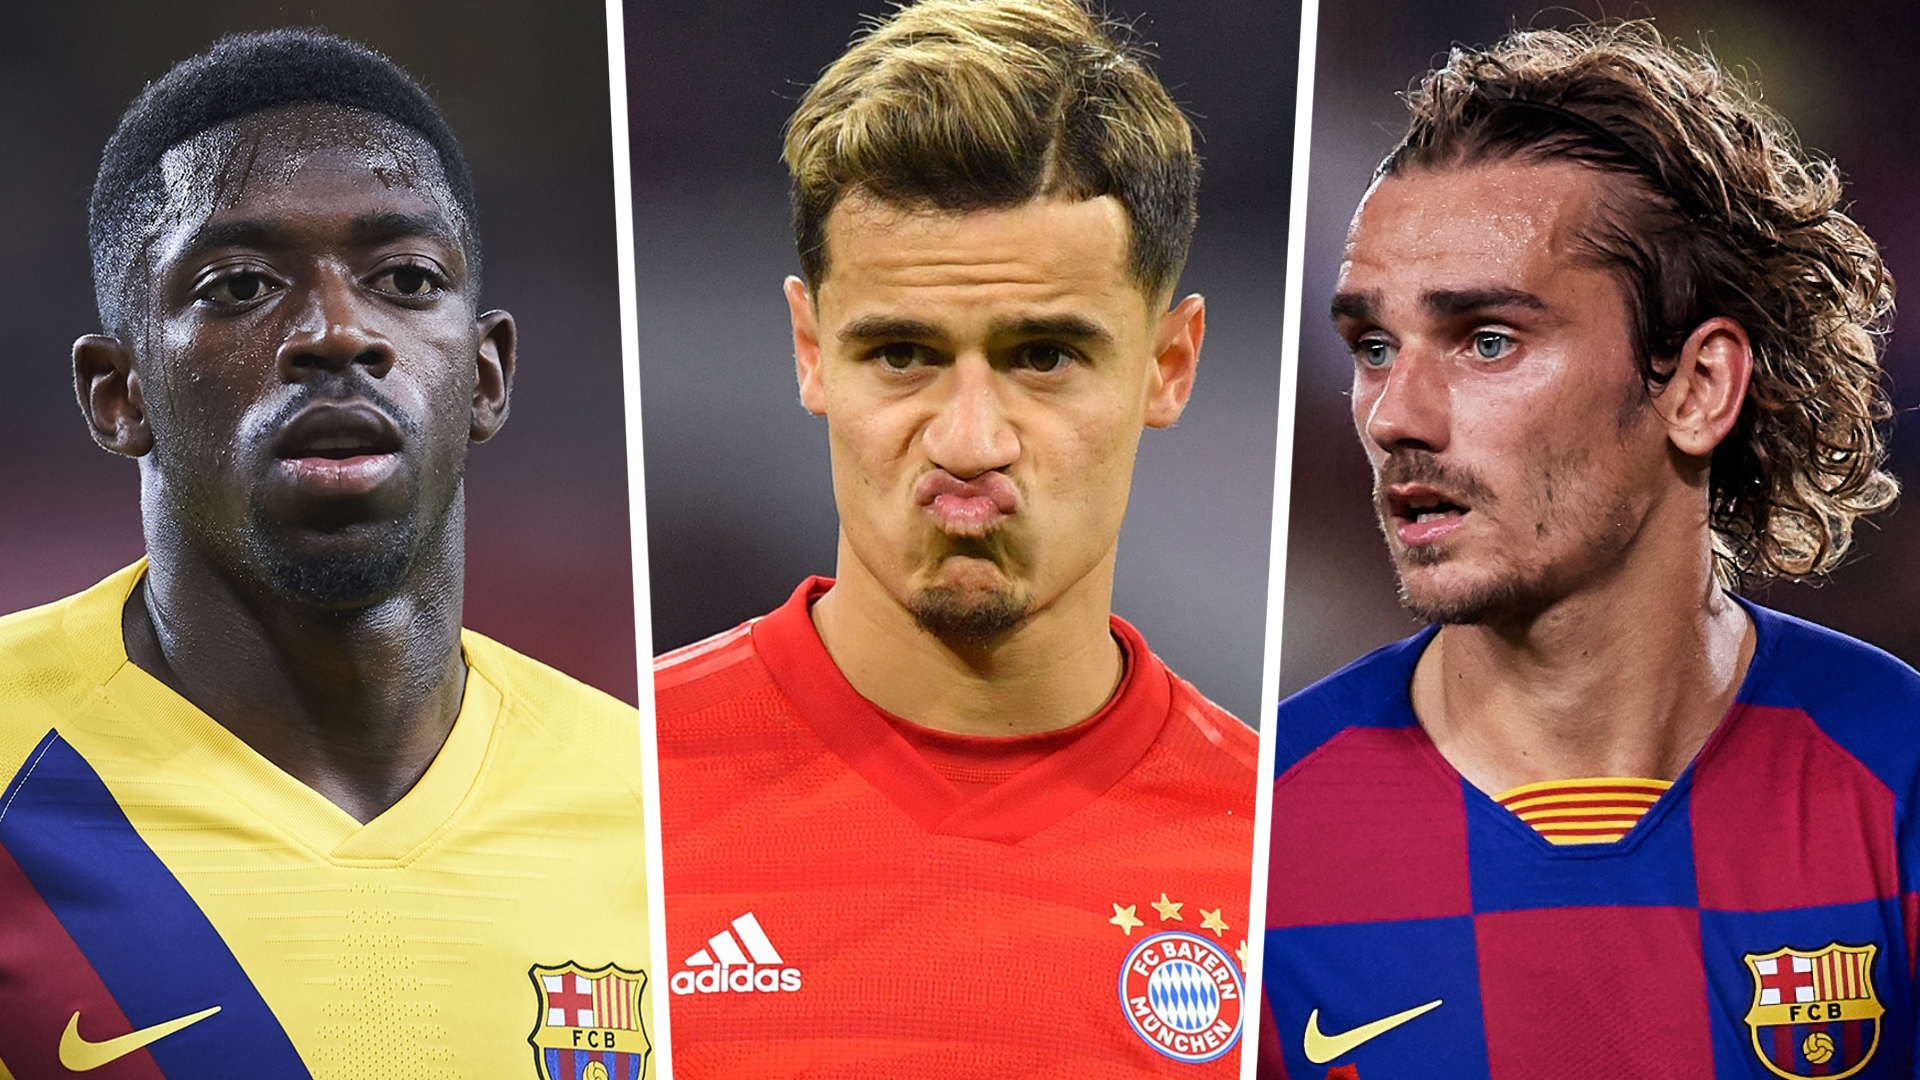 Camp Nou clearout: Coutinho, Griezmann all the players Barcelona would sell to buy Lautaro